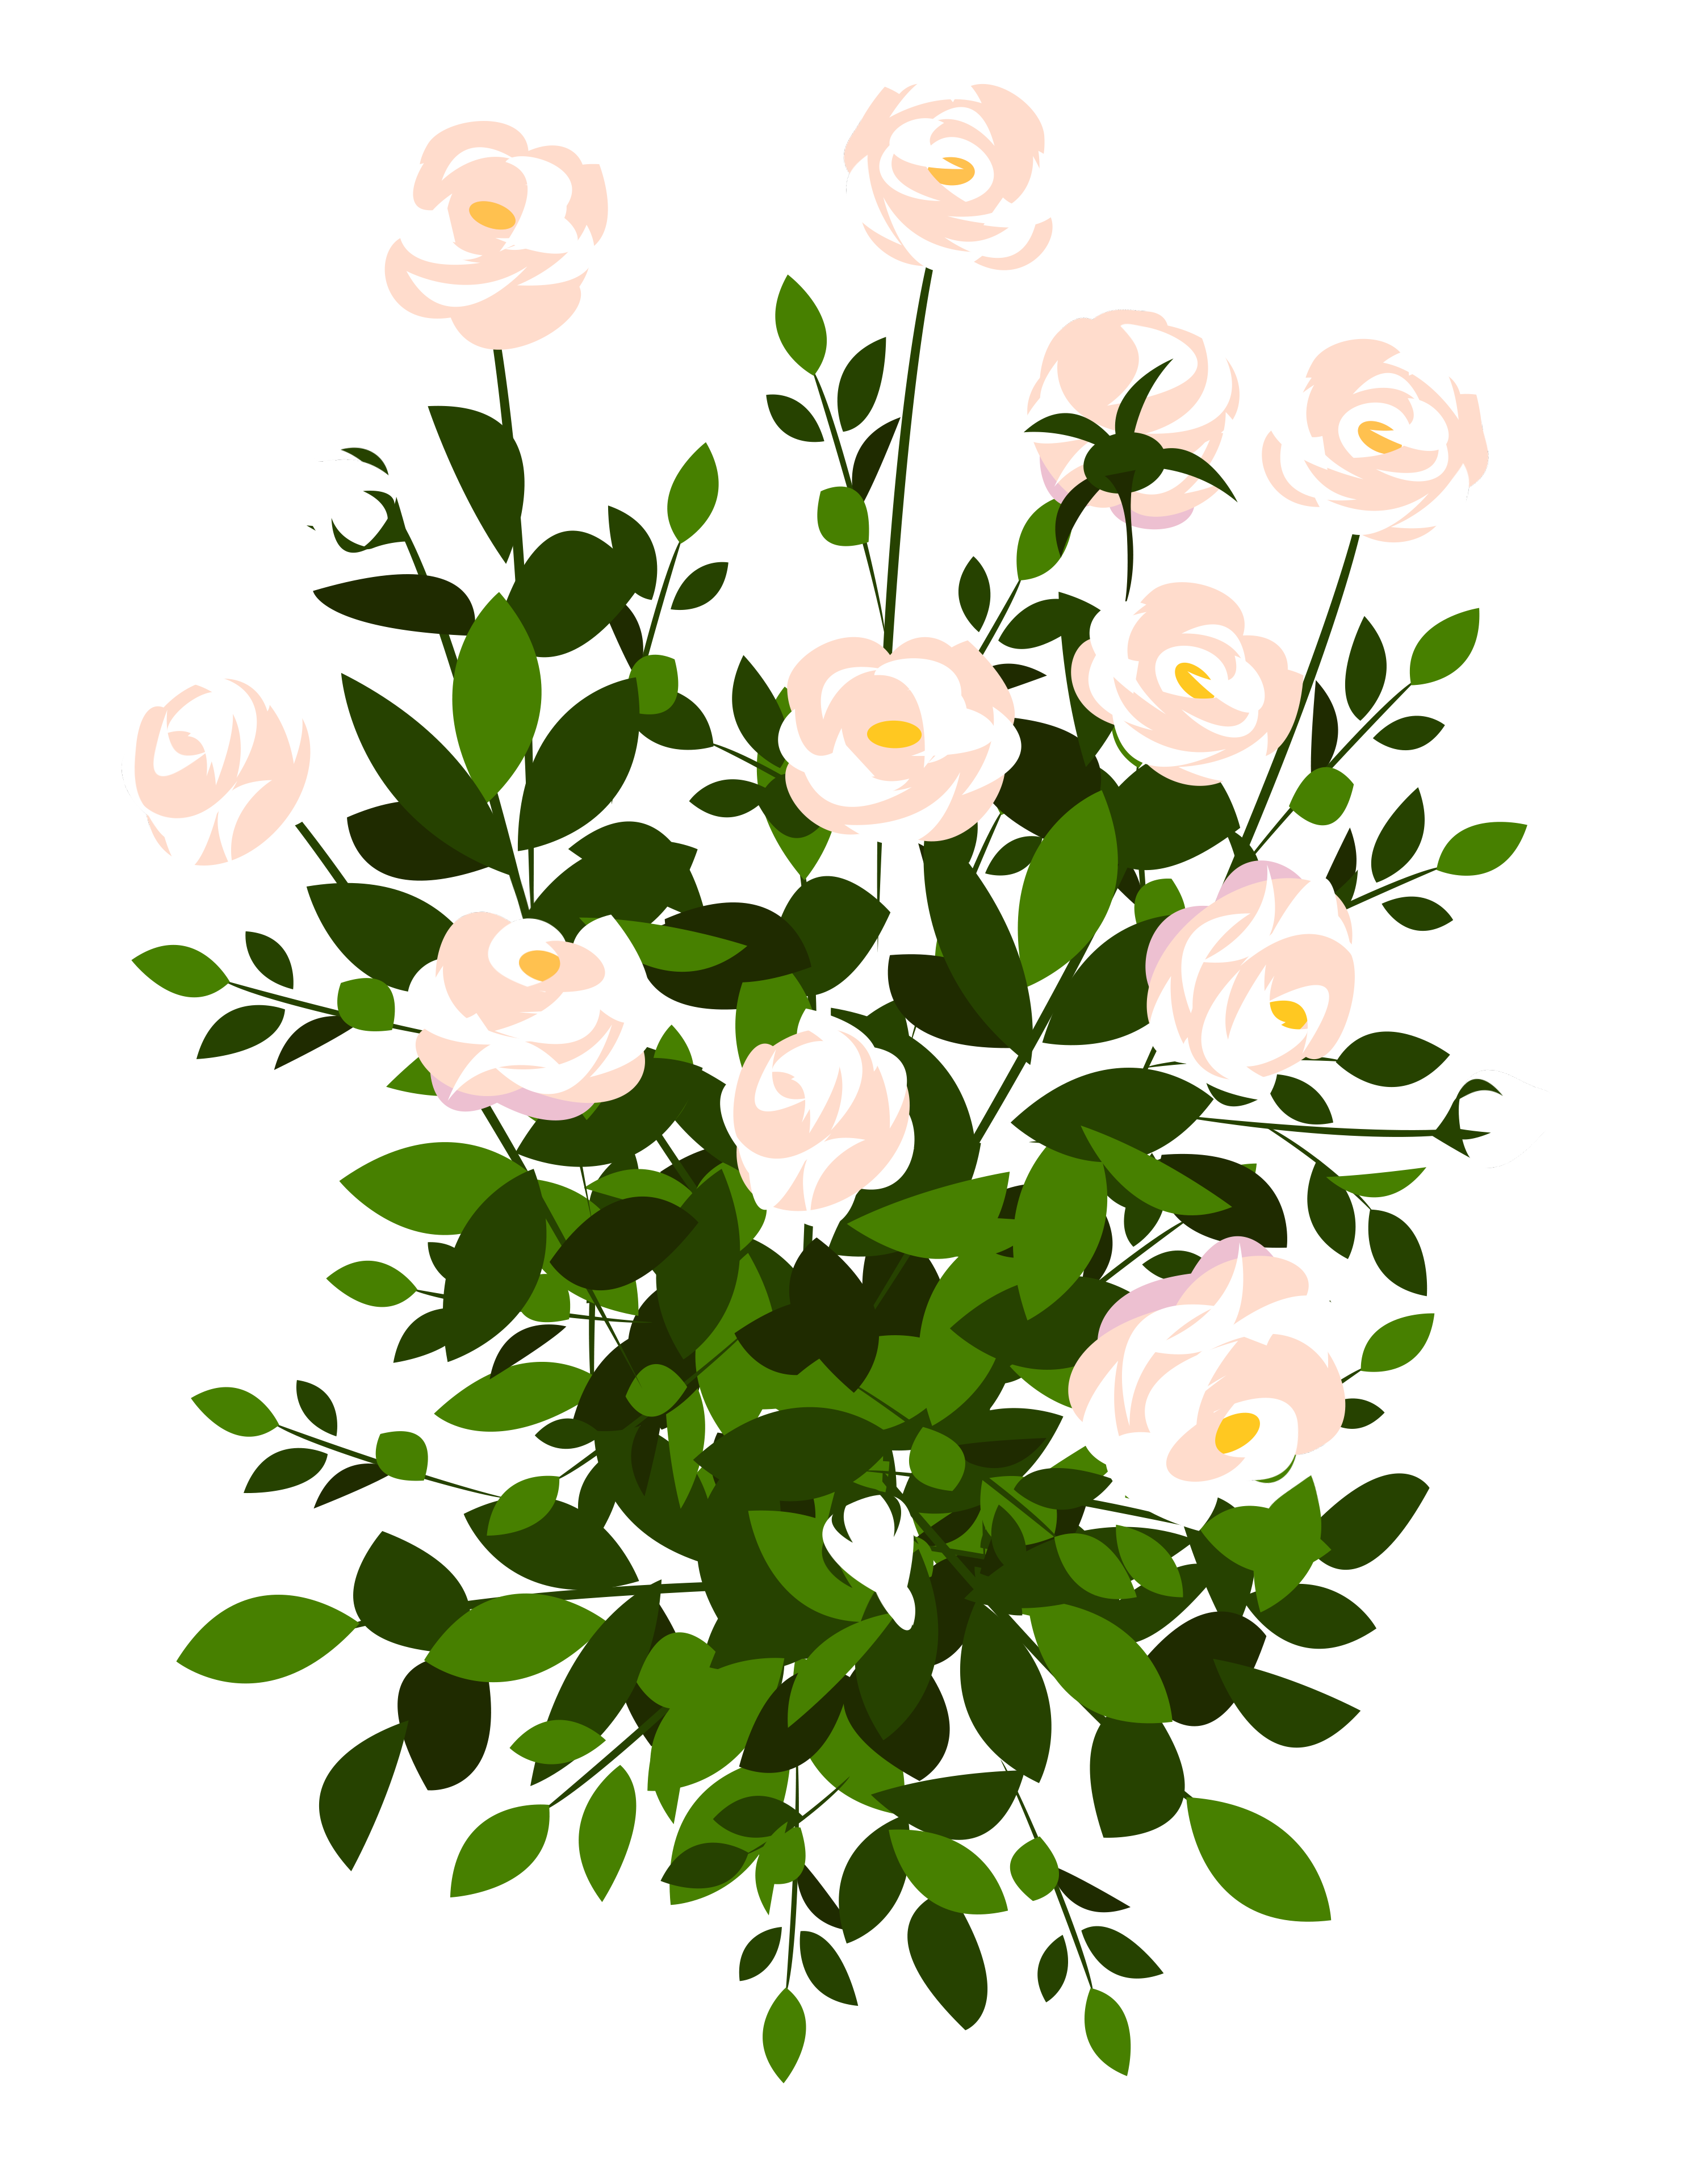 picture royalty free stock Bush clipart transparent flower. Whte rose png picture.